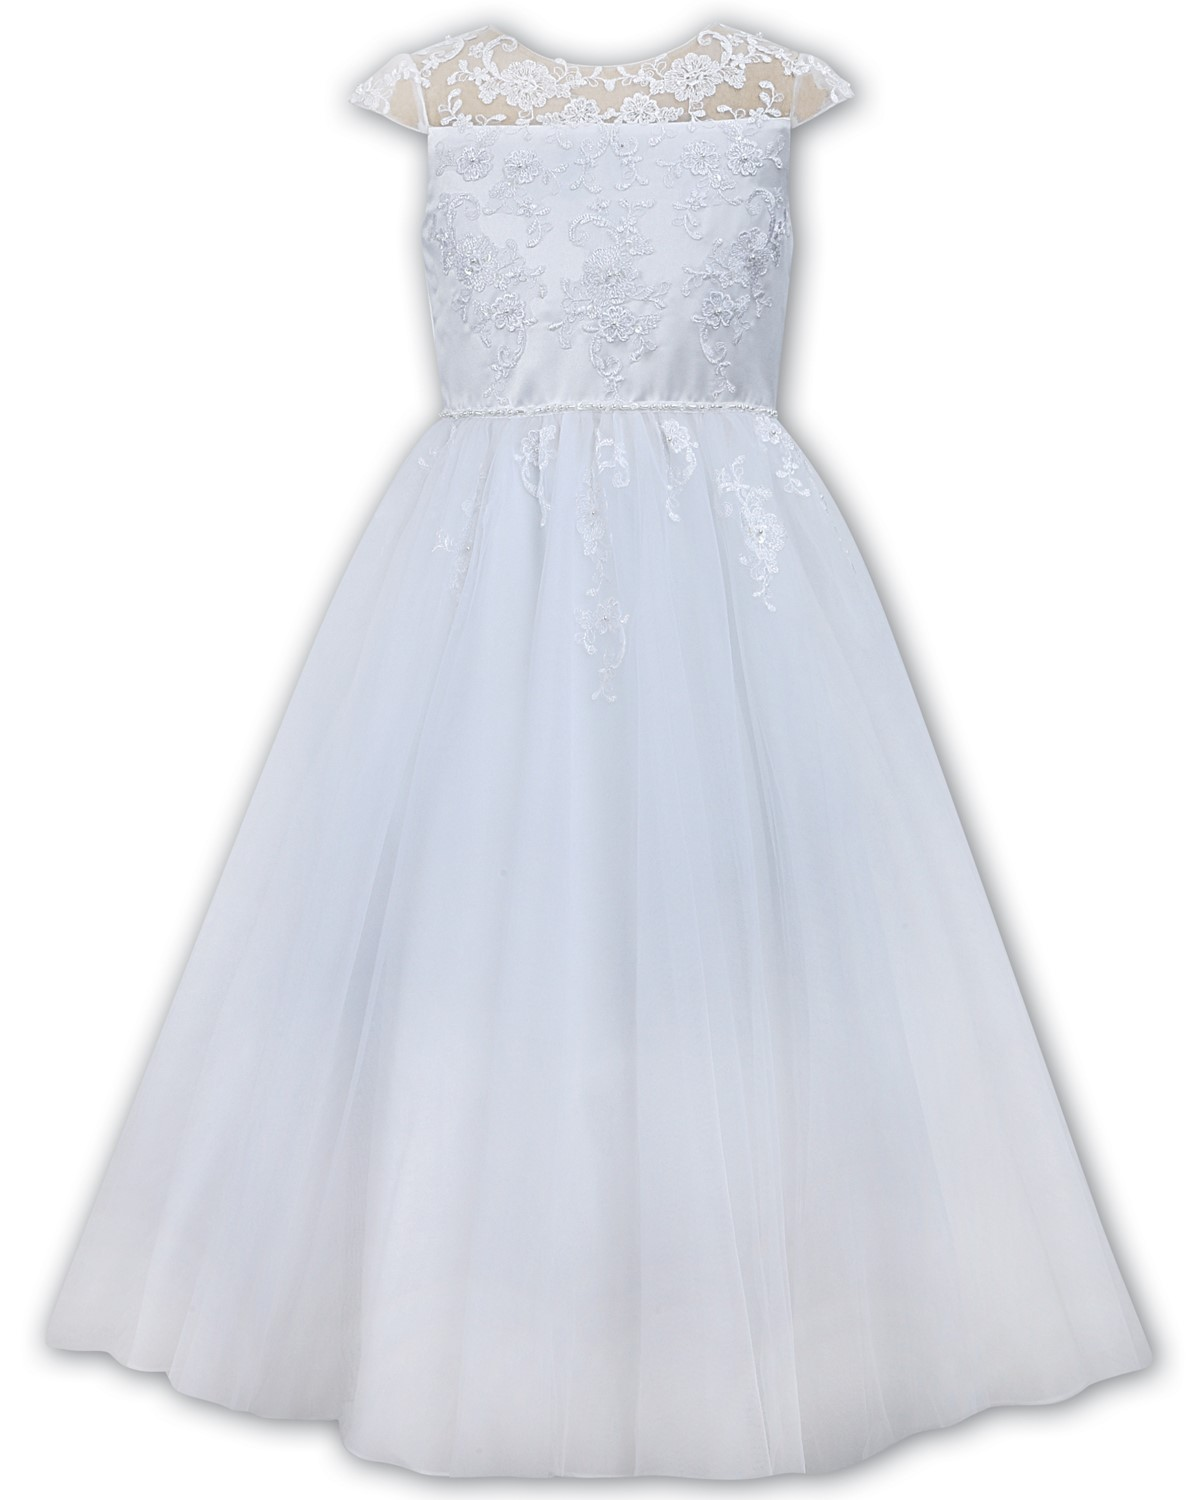 Sarah Louise -b- Communion dress 090064